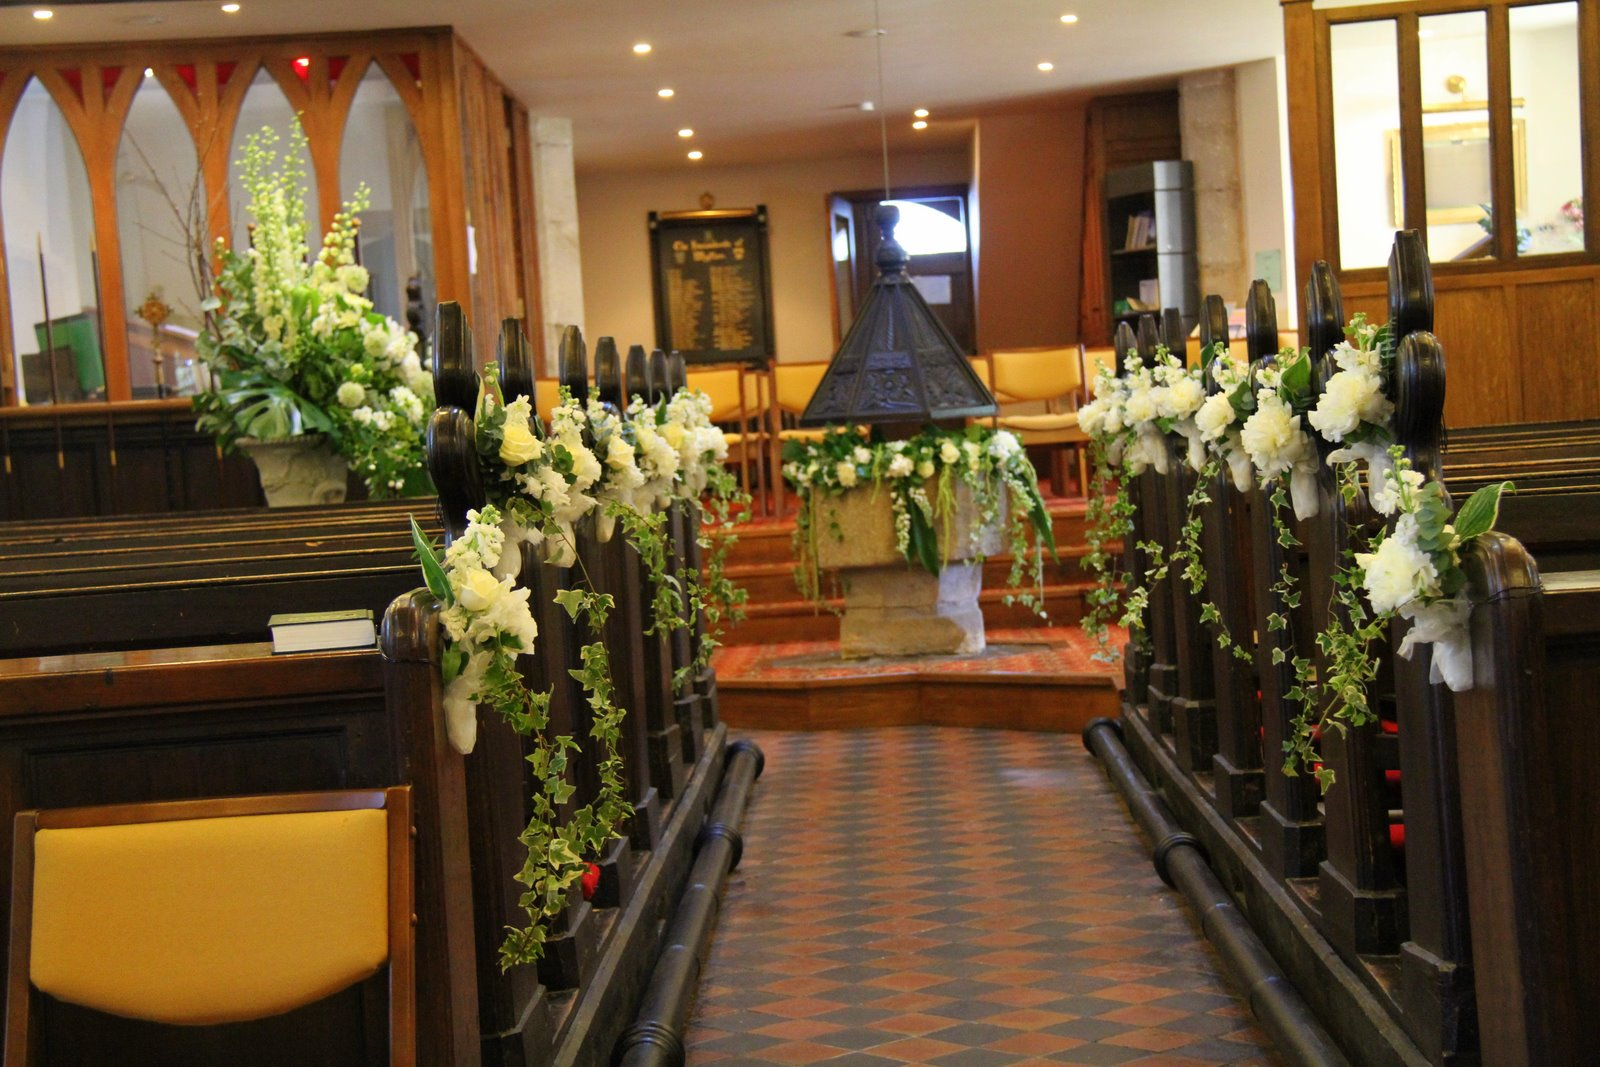 church weddings decorations wedding pew bows church decorations living room interior 2949